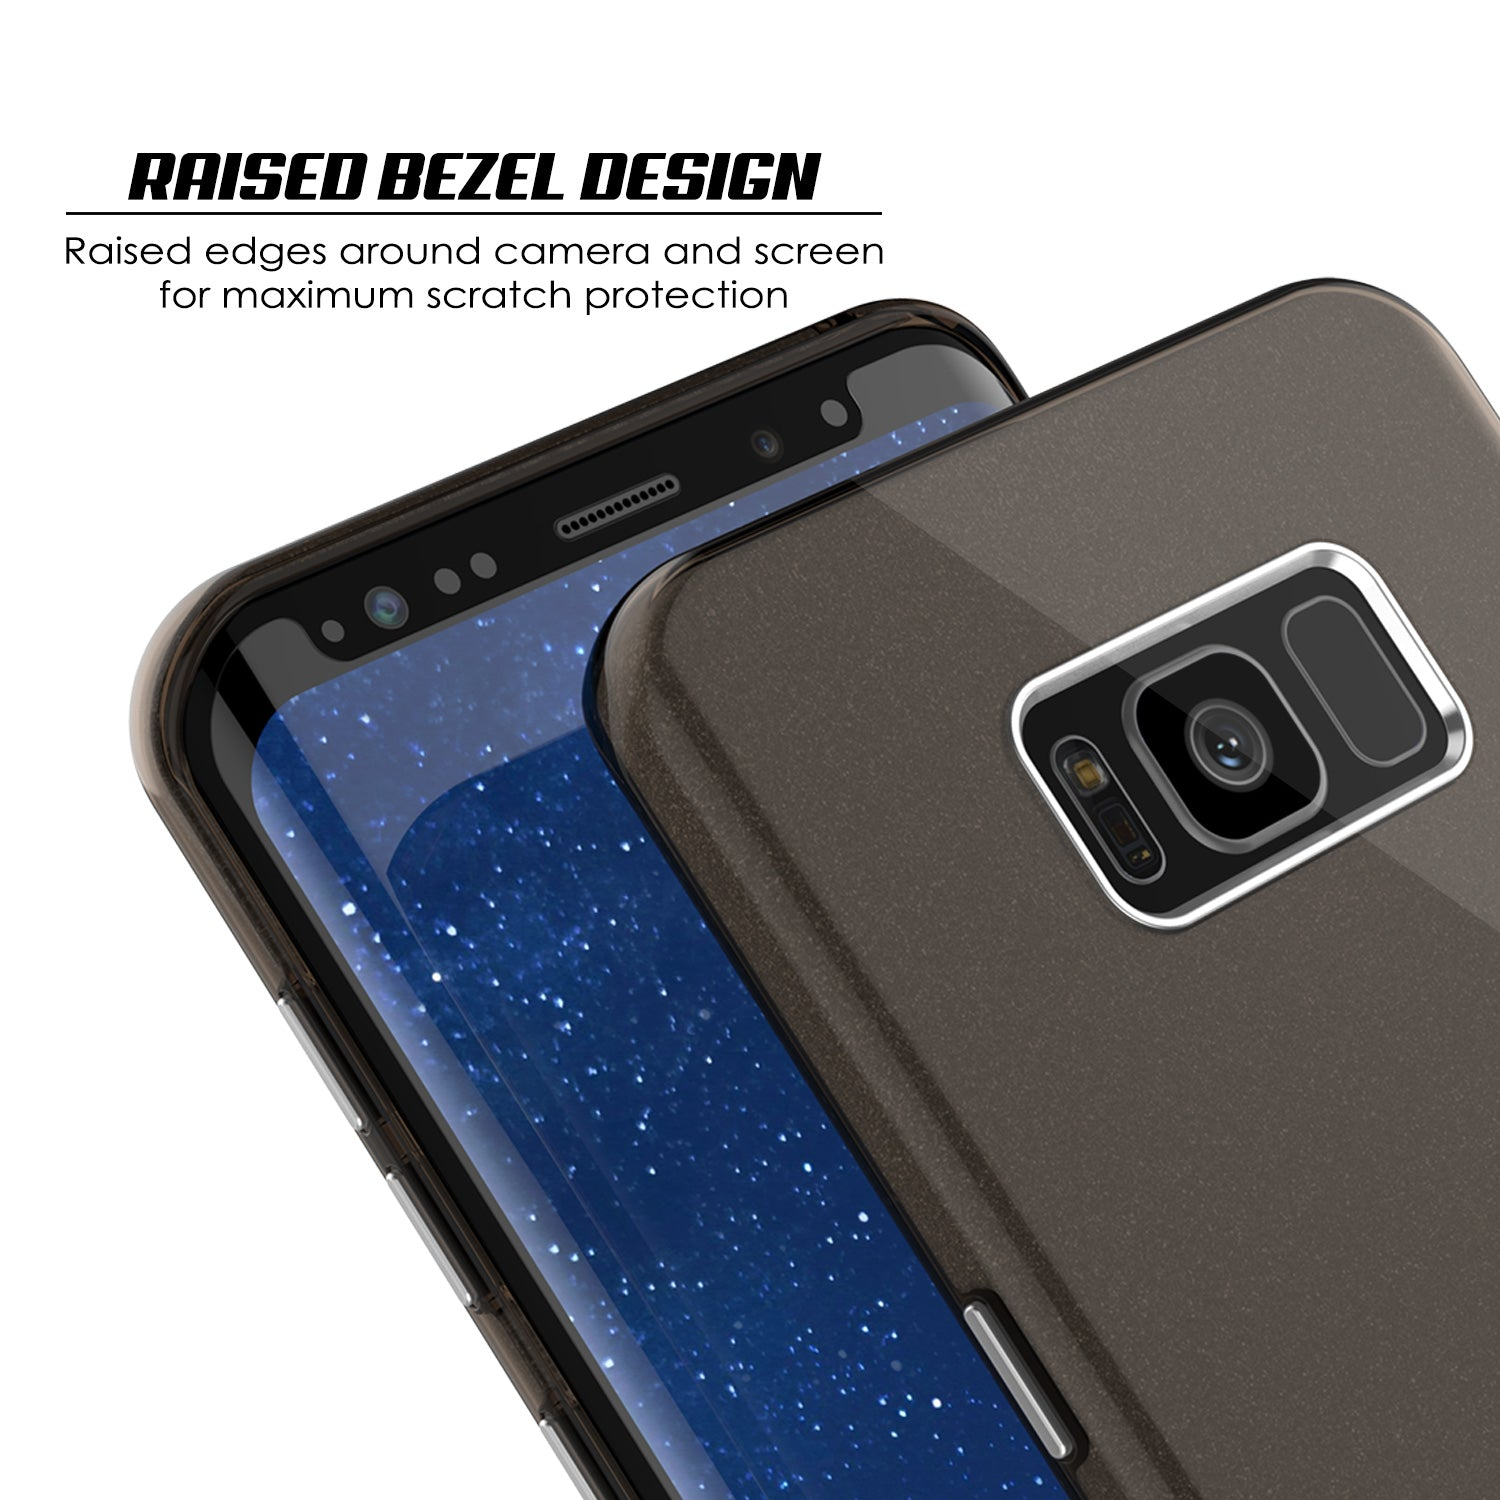 Galaxy S8 Case, Punkcase Galactic 2.0 Series Ultra Slim Protective Armor TPU Cover w/ PunkShield Screen Protector [Black/grey]